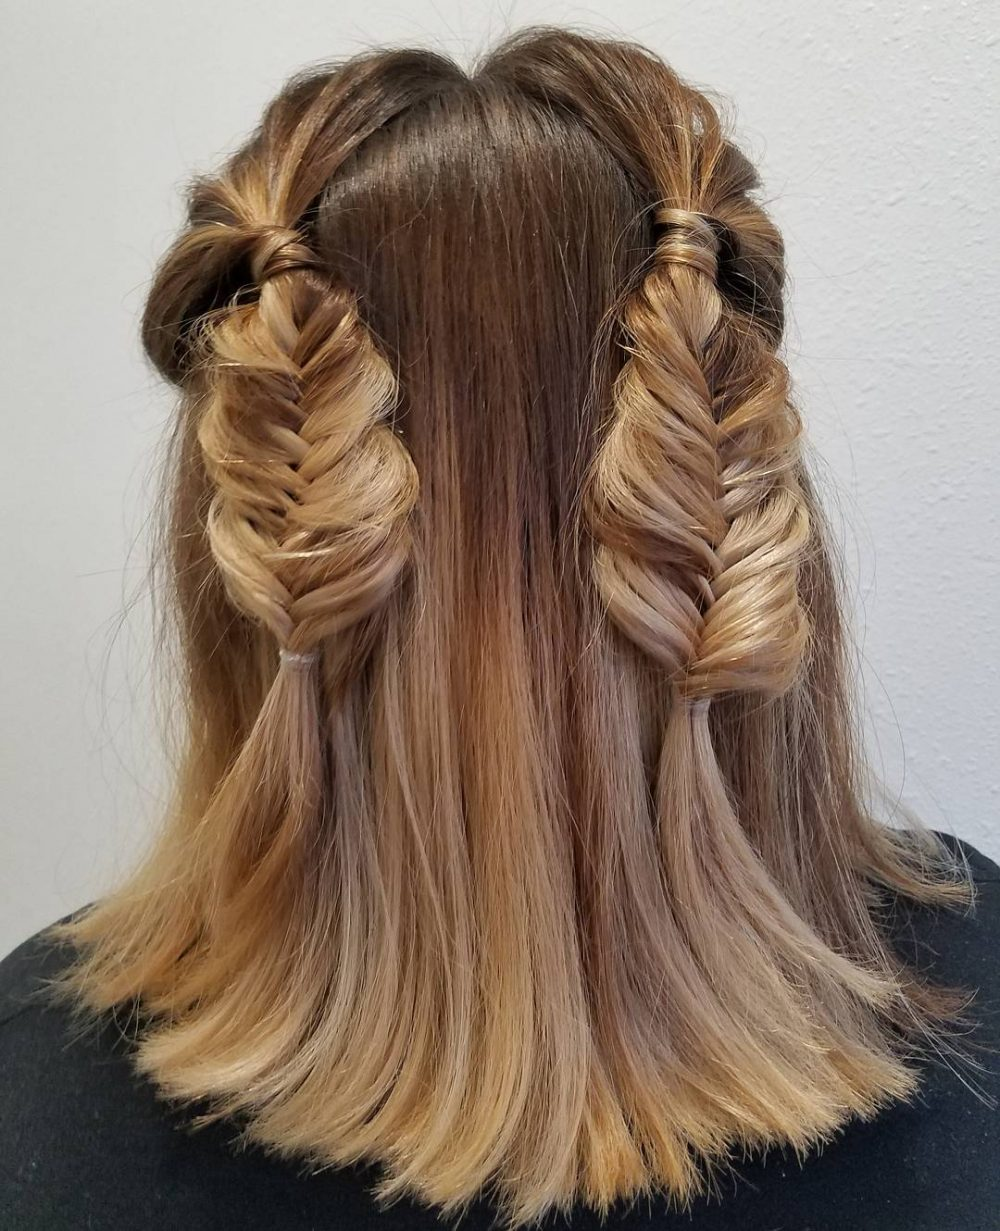 Two-Mini-Braids-on-Medium-Length-Hair Most Amazing Medium Braided Hairstyles